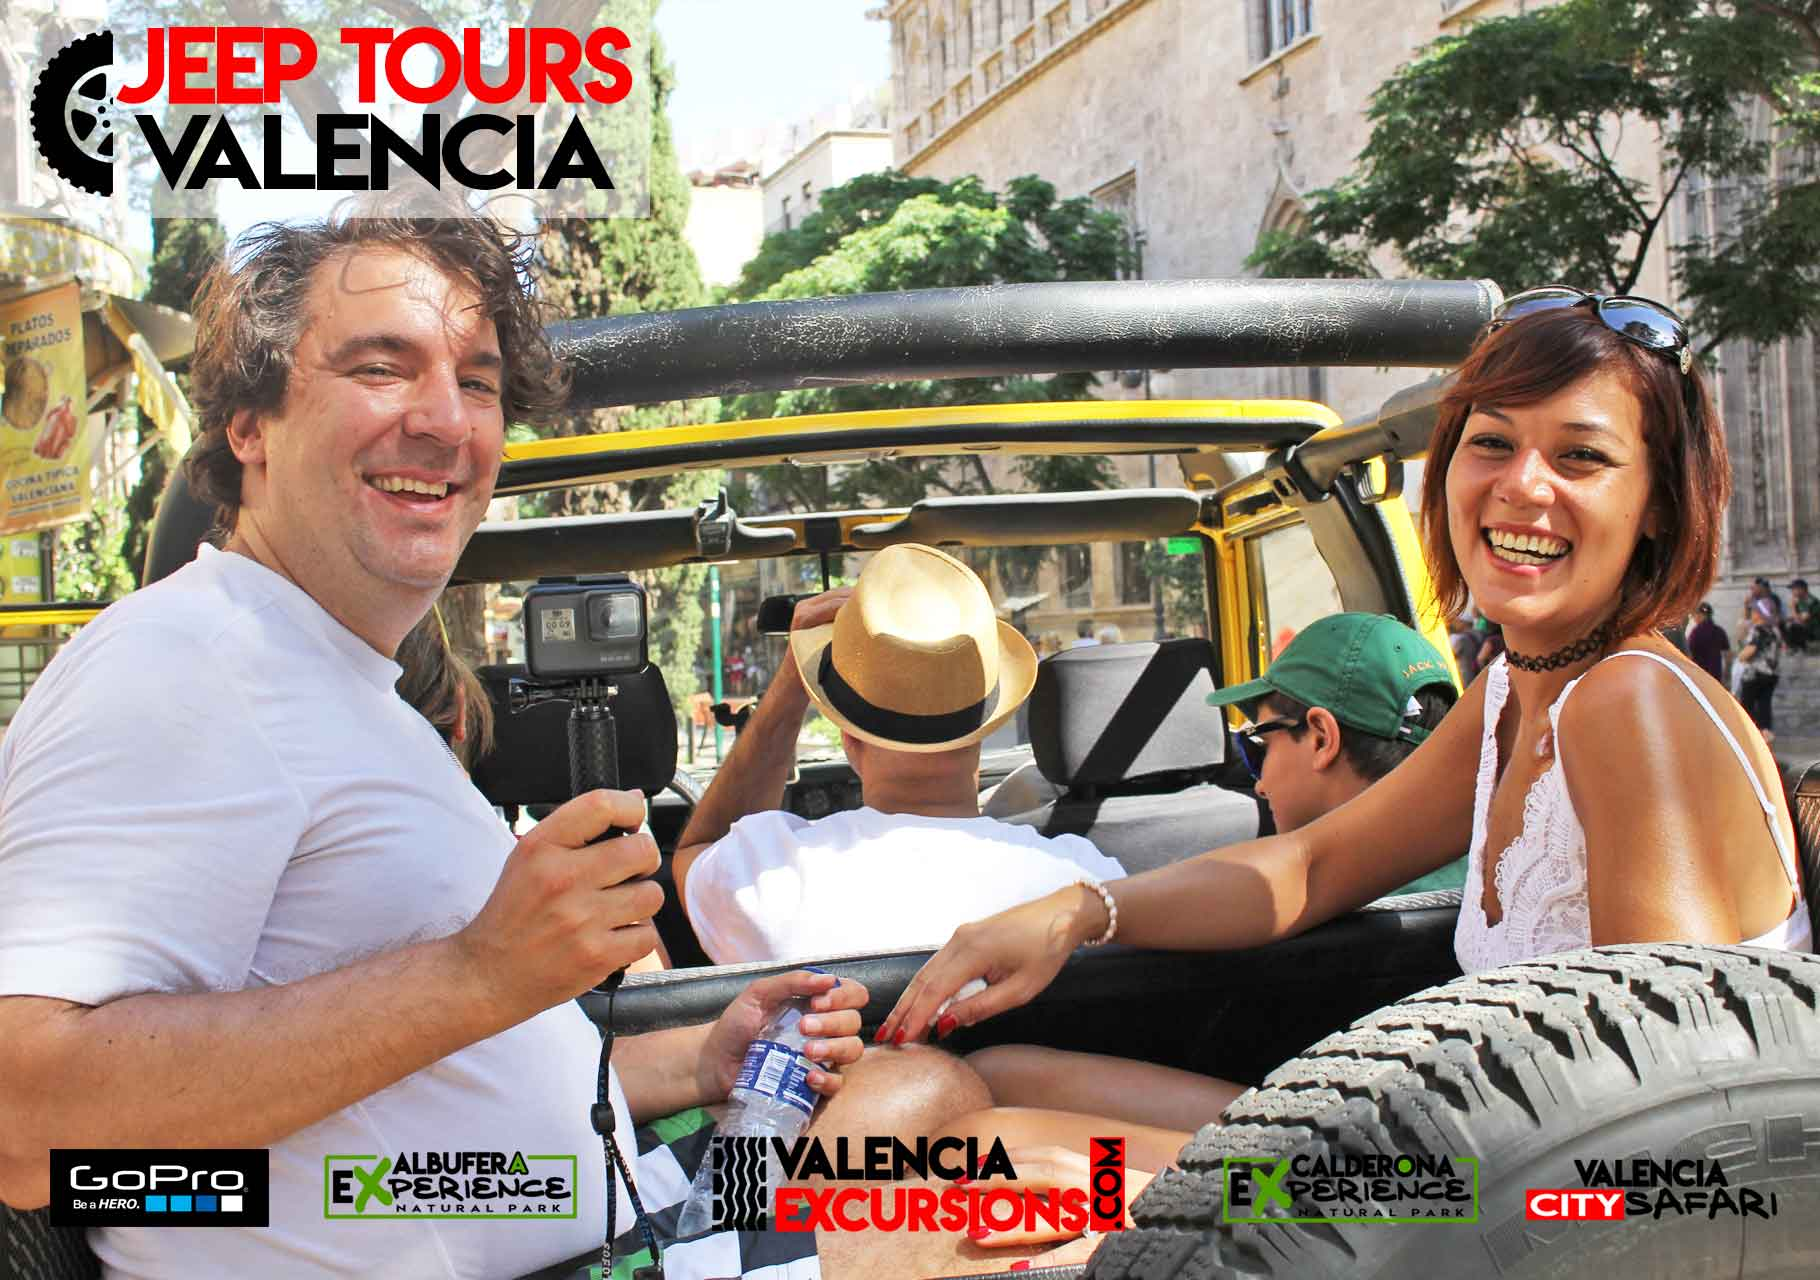 Valencia jeep tour